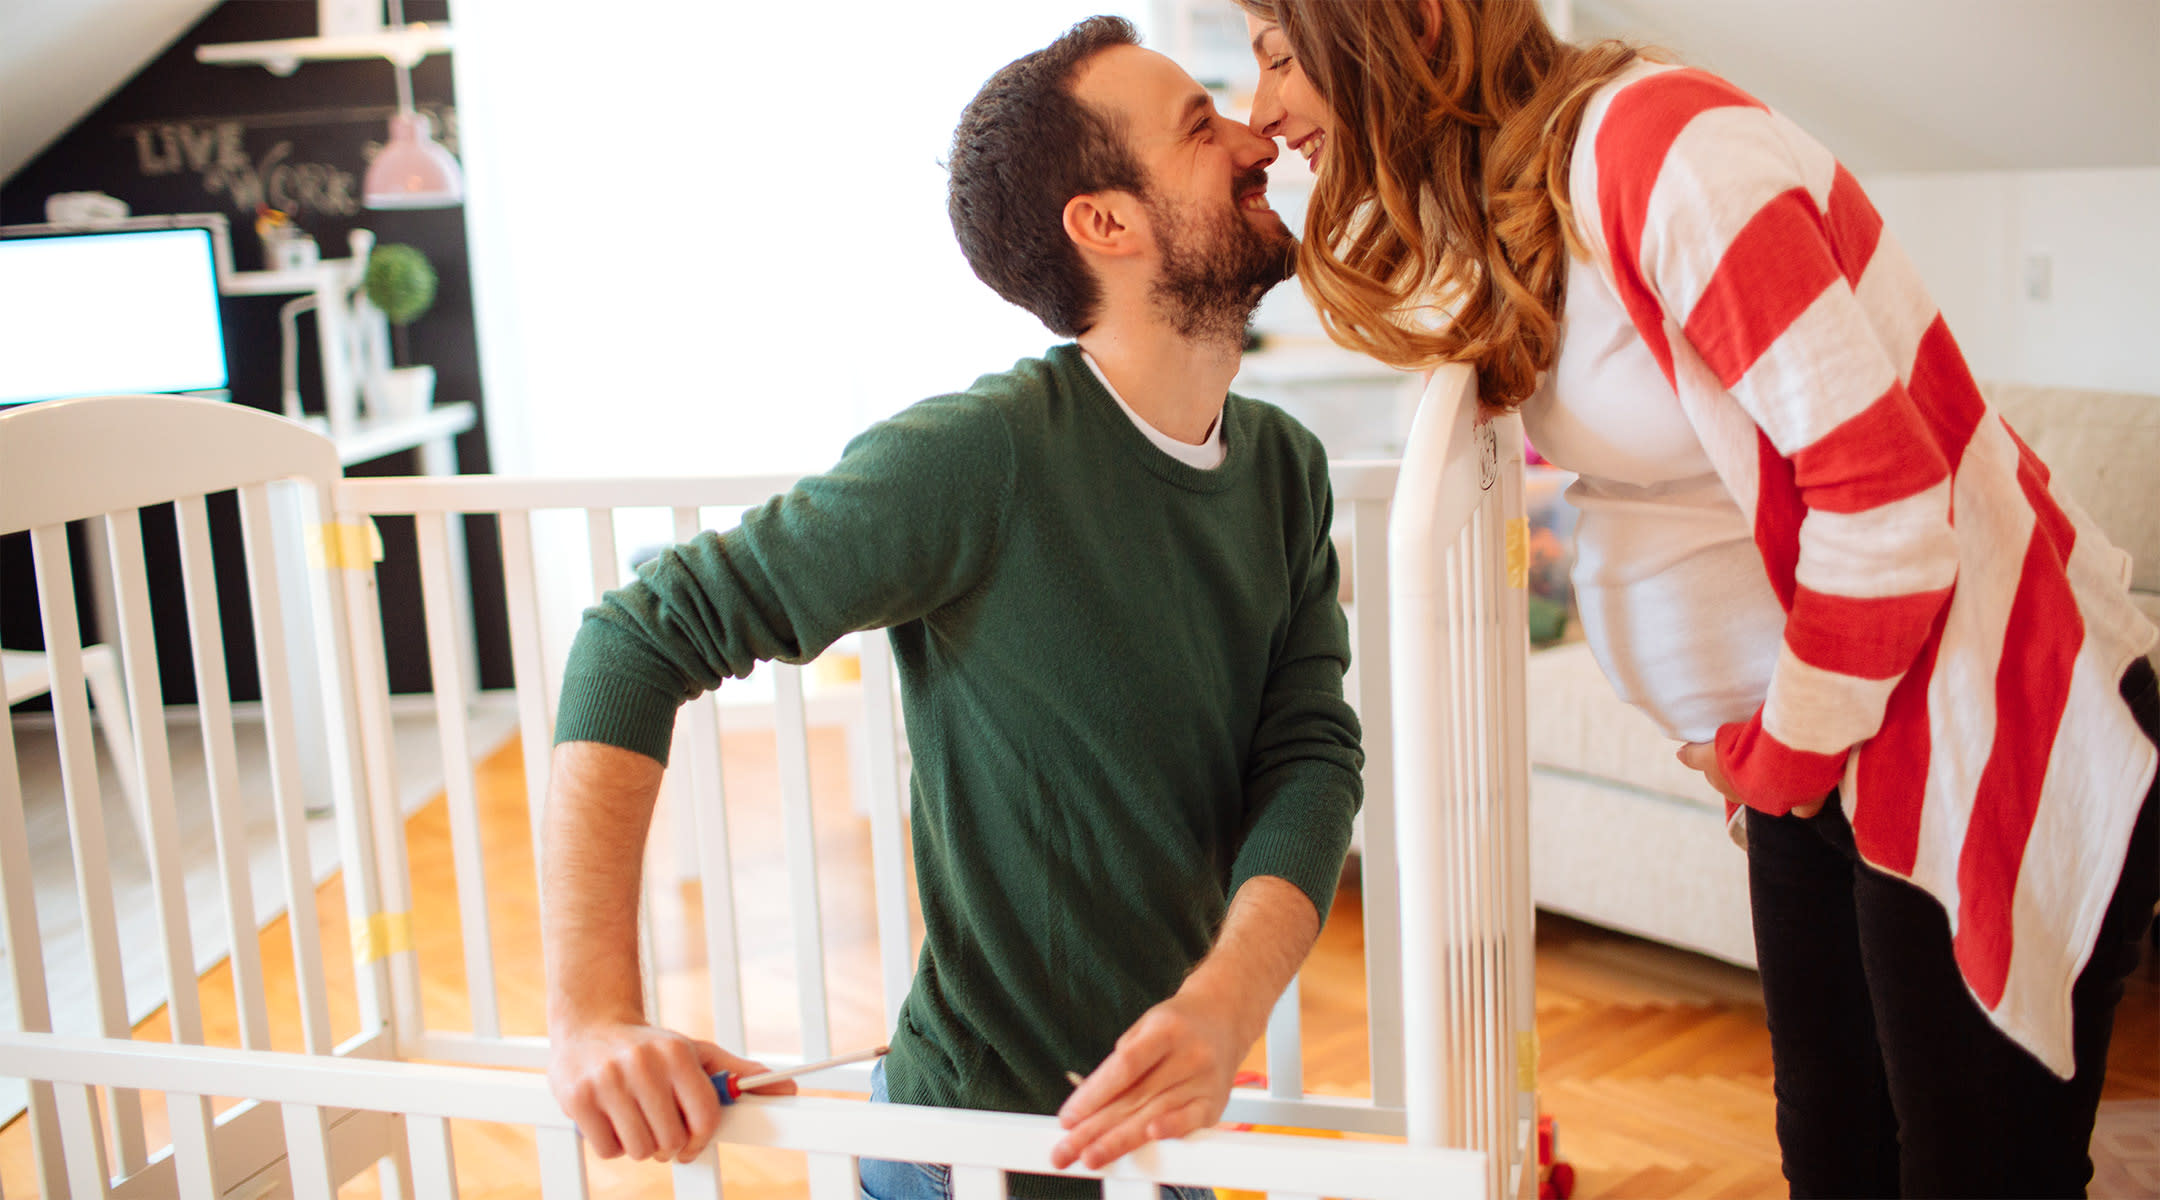 Pregnant woman affectionately rubbing noses with her partner who is building a baby crib.